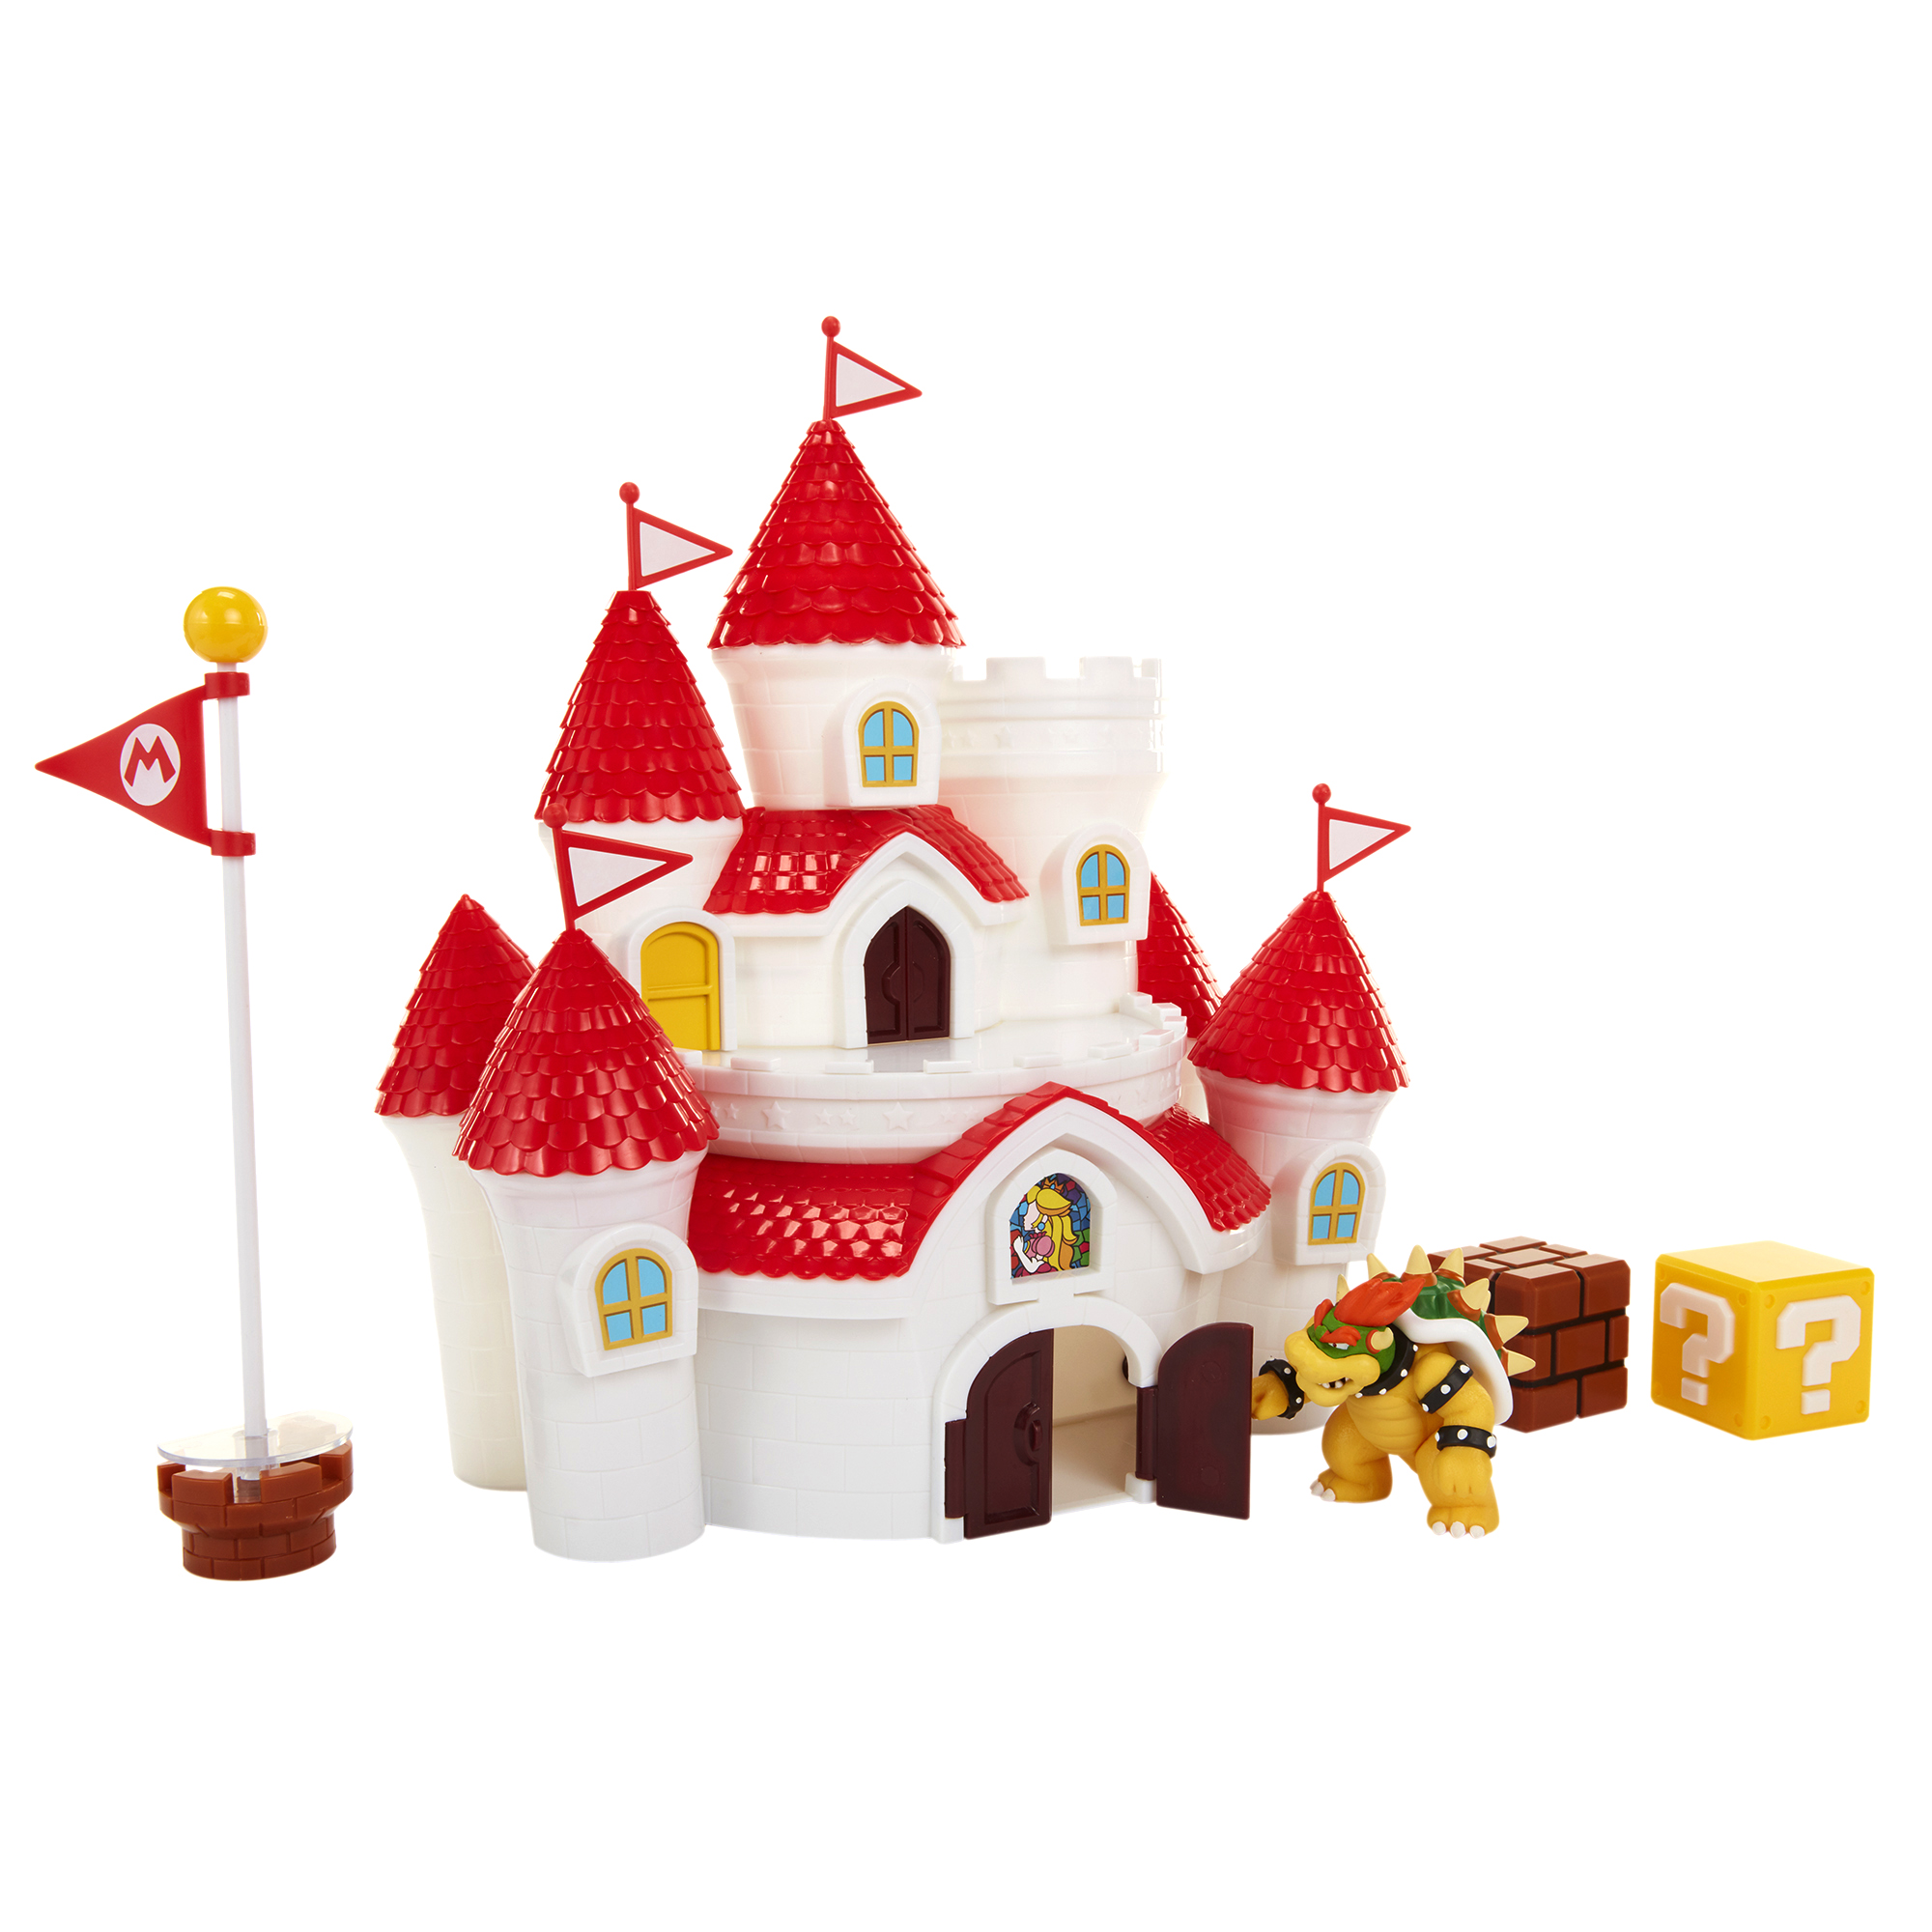 Super Mario 2.5 Mushroom Kingdom Castle Playset